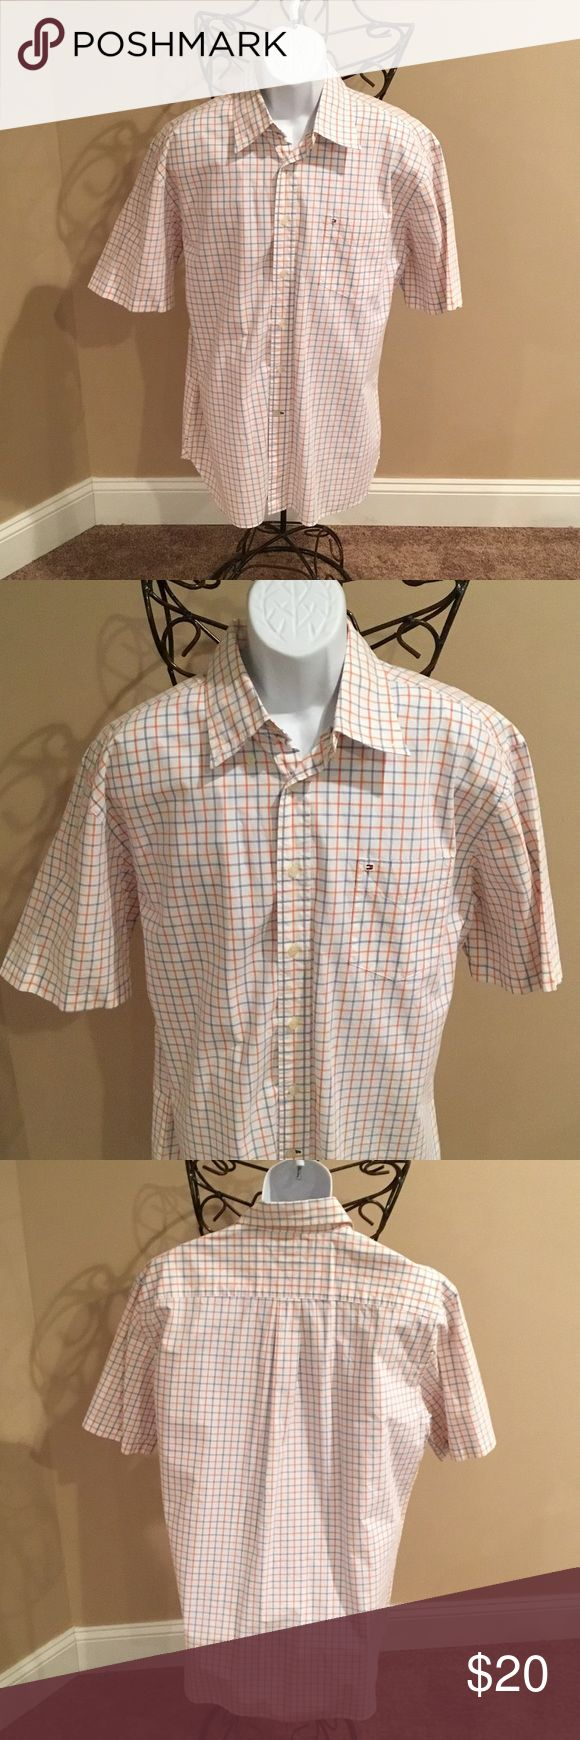 TOMMY HILFIGER SHORT-SLEEVE DRESS SHIRT WHITE WITH BLUE AND ORANGE STRIPES. 💯% COTTON. Tommy Hilfiger Shirts Dress Shirts